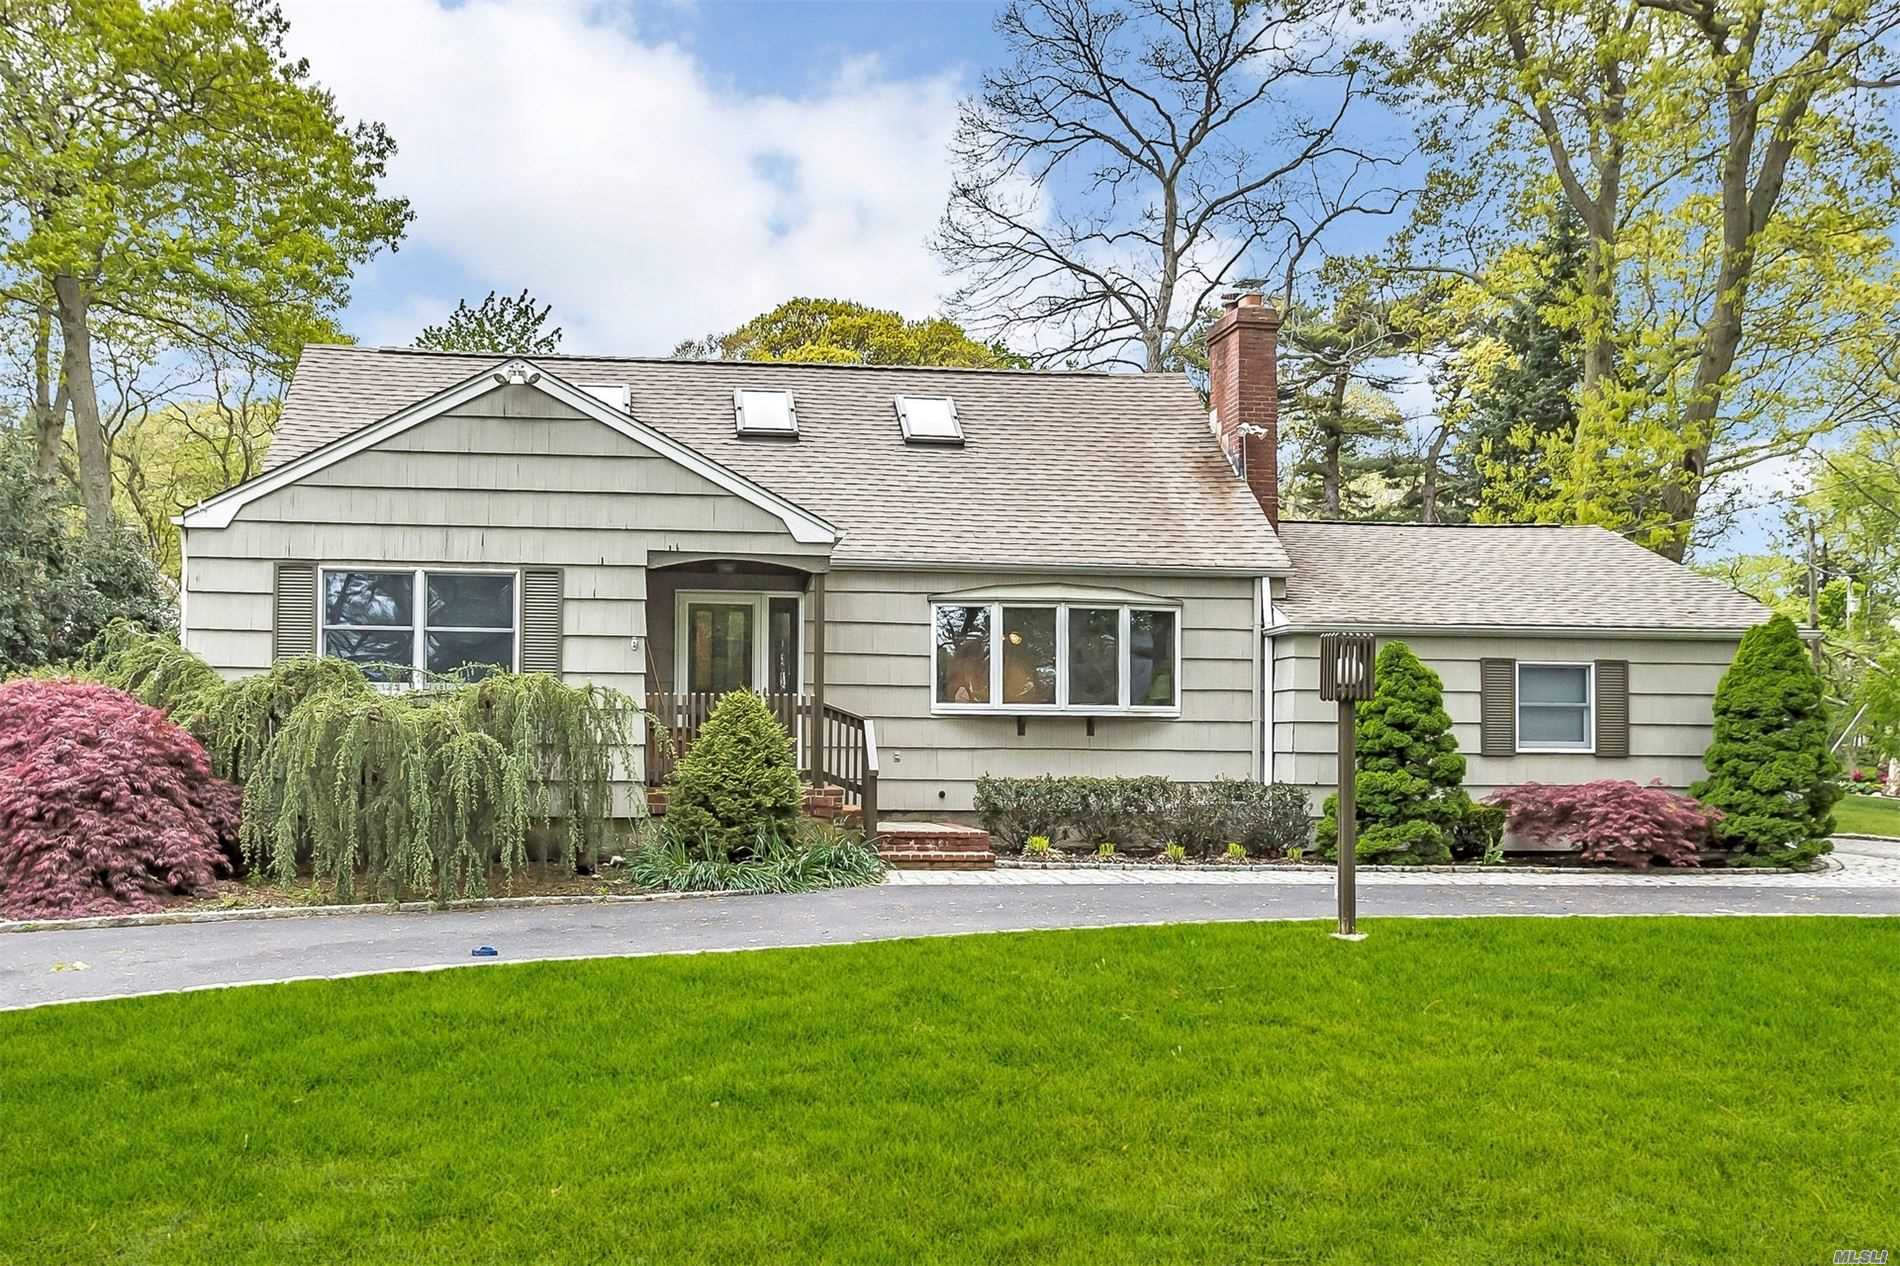 455 Lombardy Blvd - Brightwaters, New York